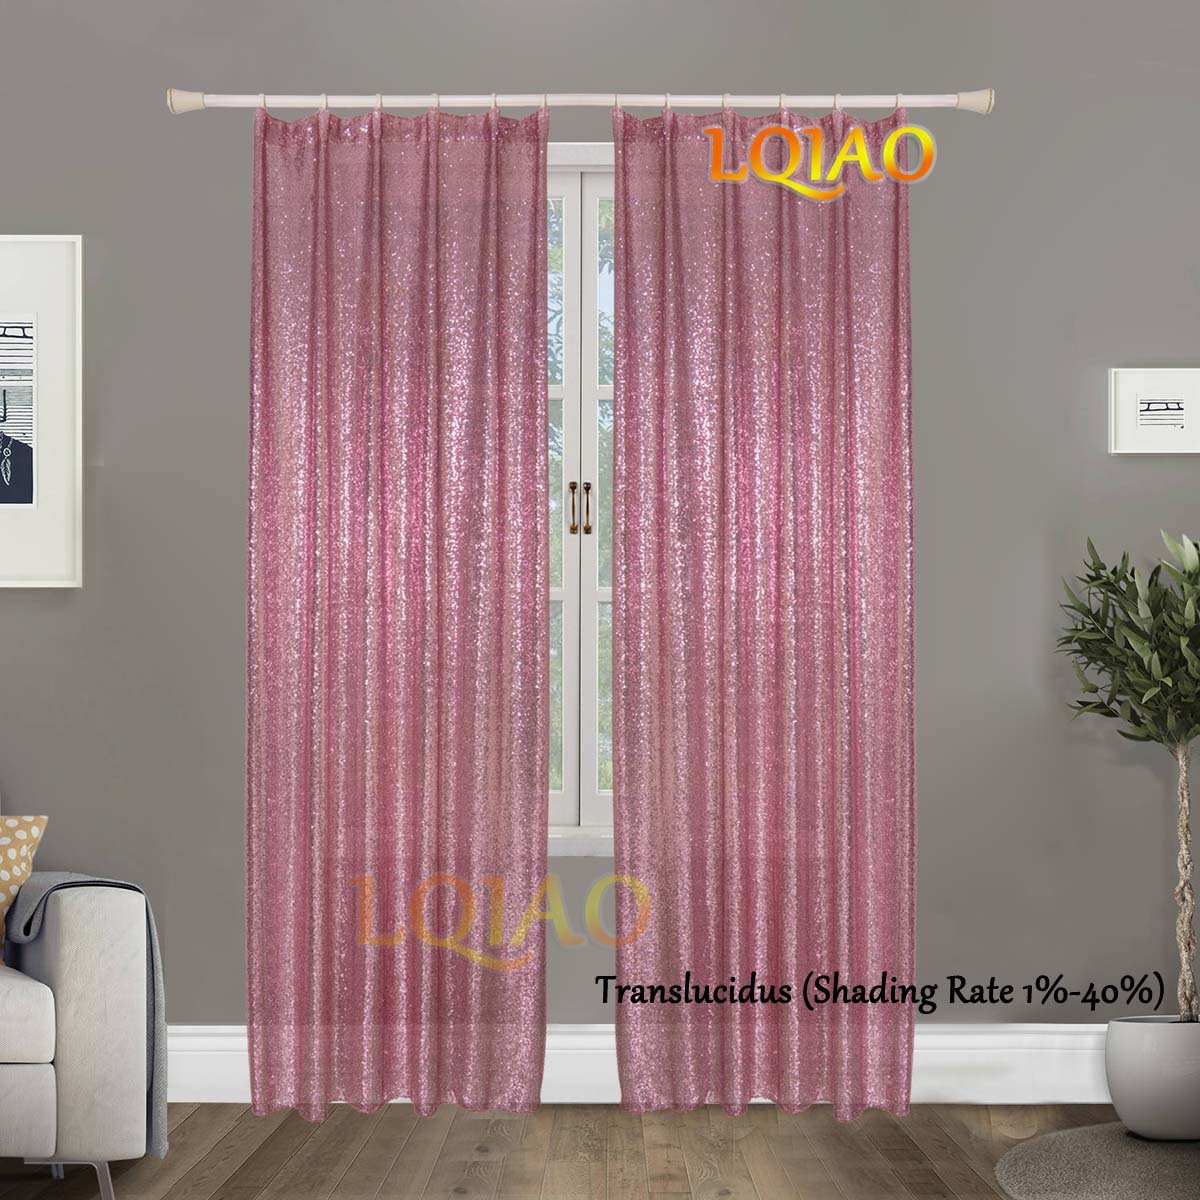 LQIAO Luxurious Metalic Pink Gold Sequin Curtains 50x63in Sparkly Pink Gold Fabric Window Curtain Panel,little see through, 50x63 inches,More Colors Options Hooks Possible